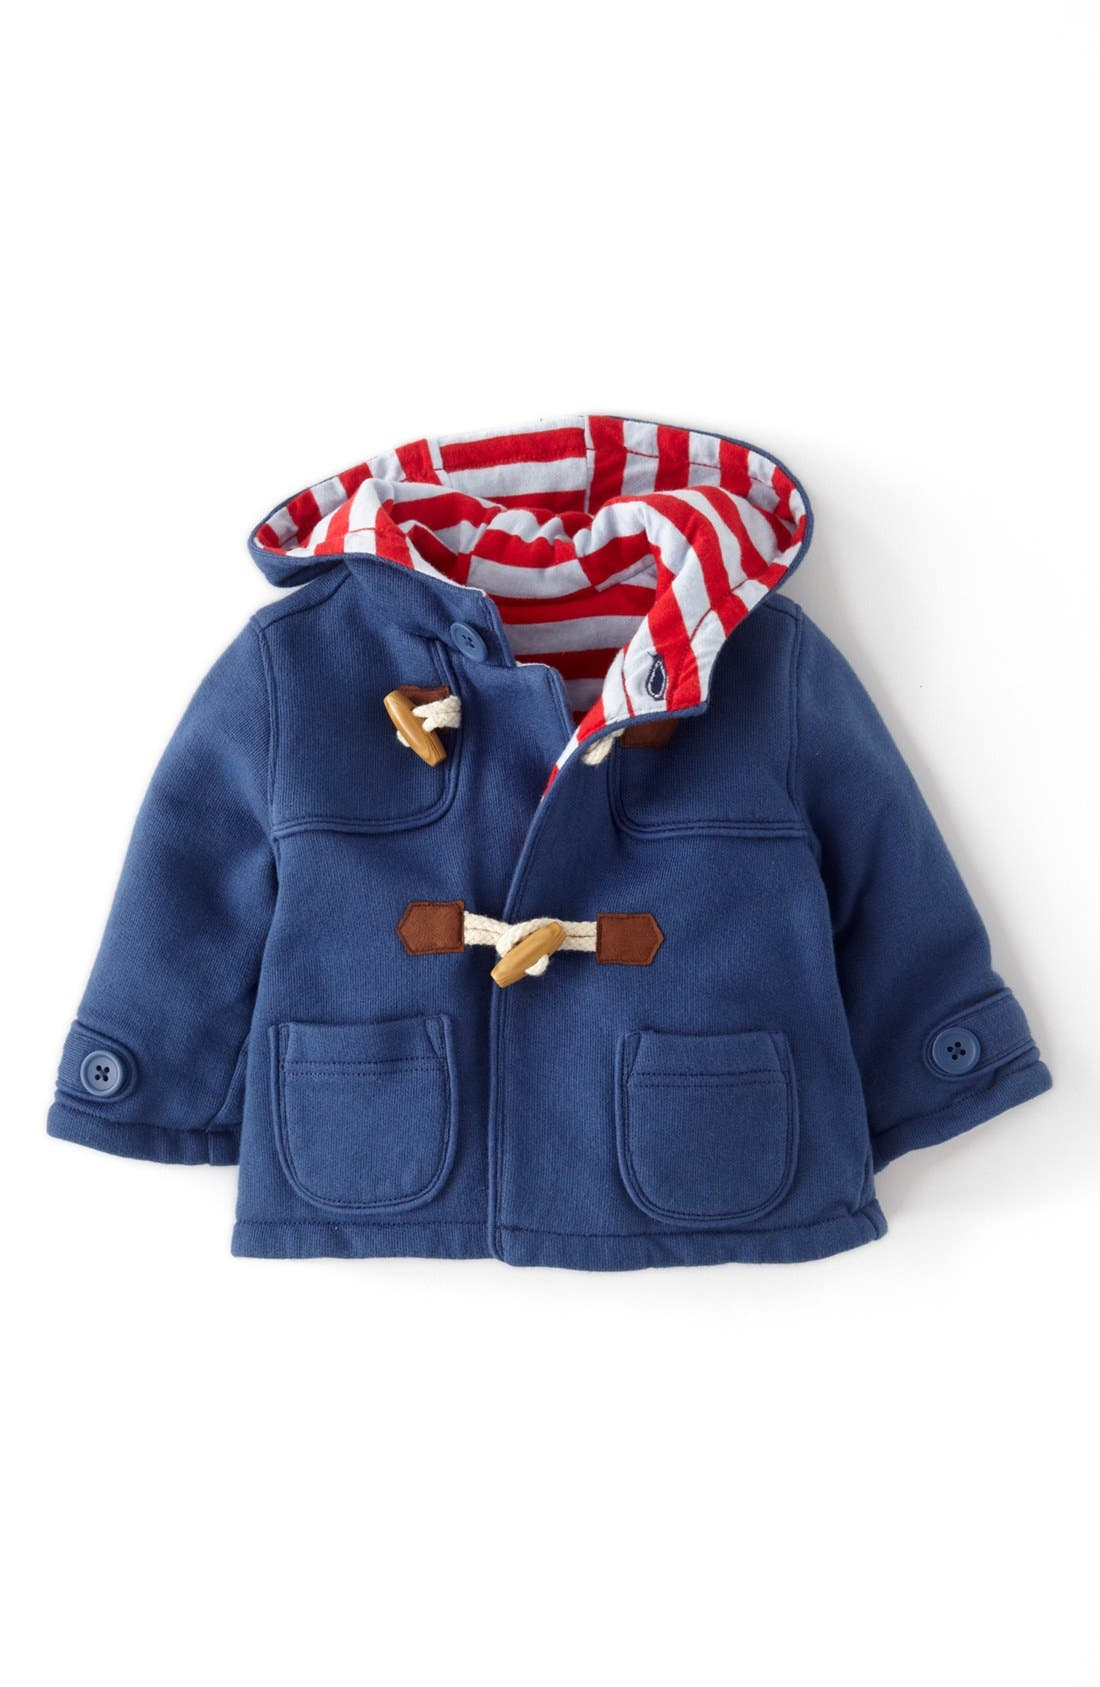 Alternate Image 1 Selected - Mini Boden Cotton Jersey Duffle Jacket (Baby Boys)